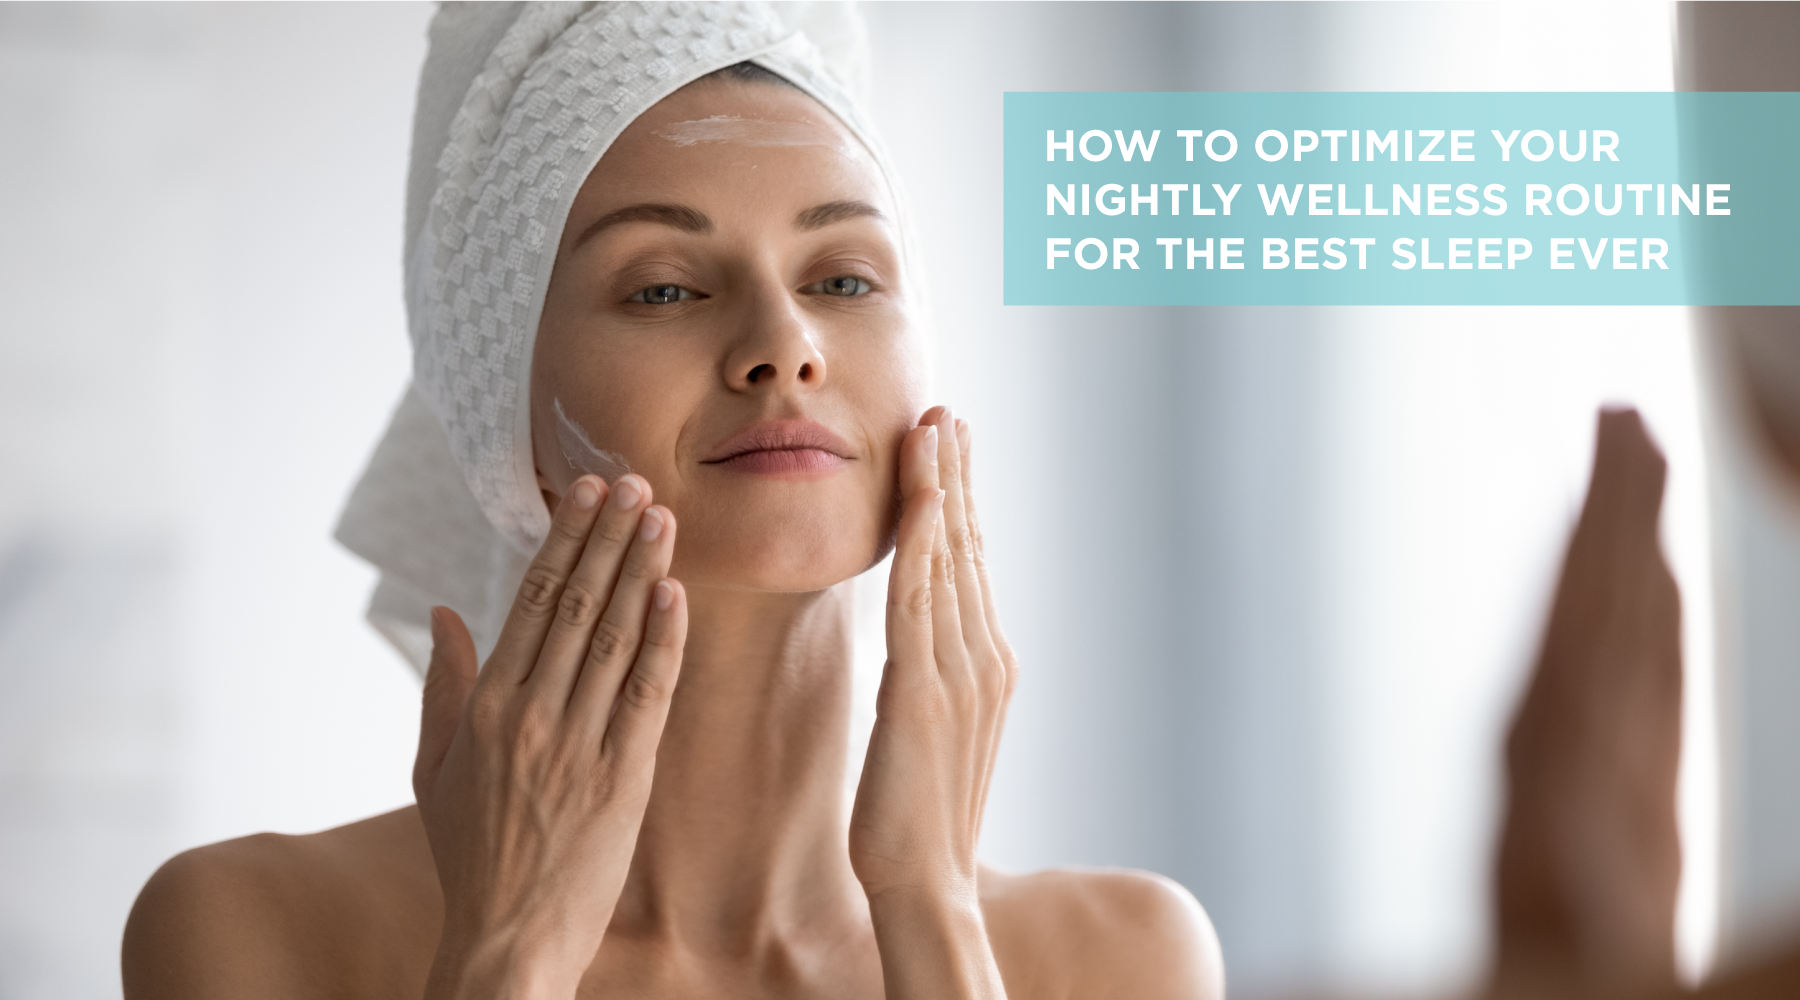 How to Optimize Your Nightly Wellness Routine for the Best Sleep Ever